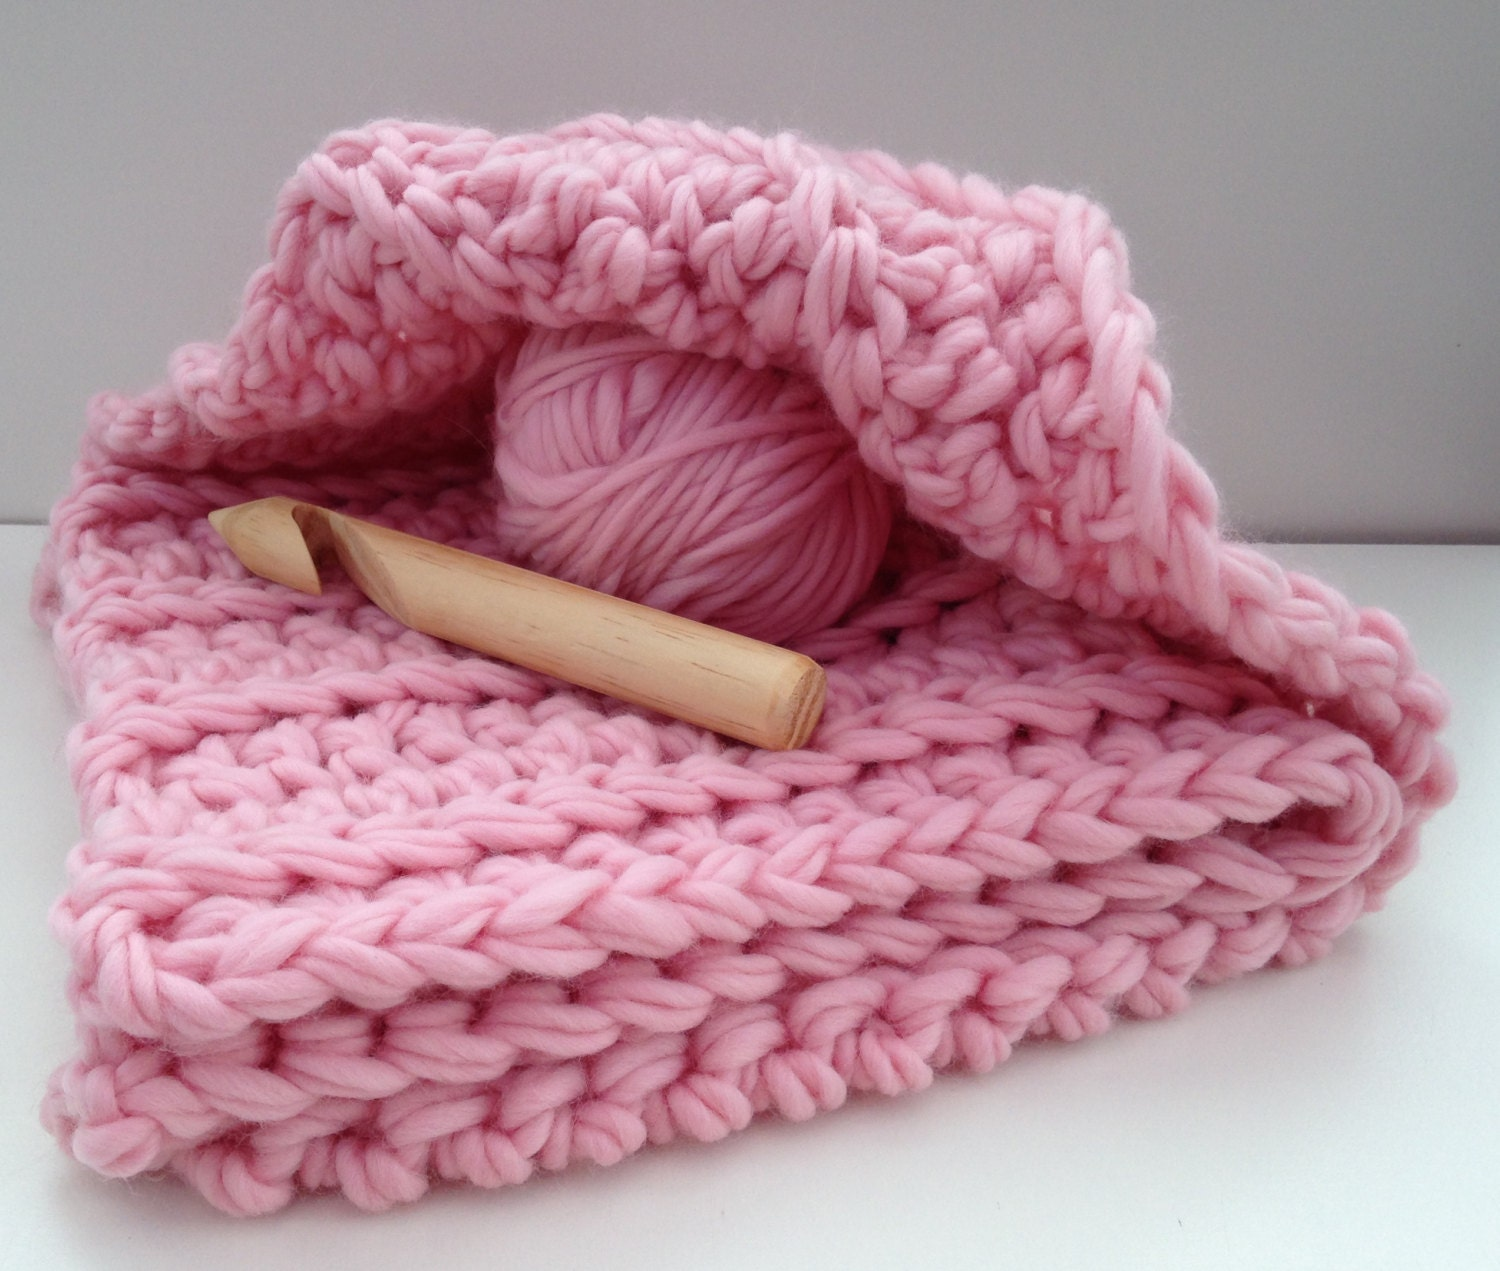 Crochet Stitches Kit : Blanket crochet kit baby blanket. DIY Learn to crochet super